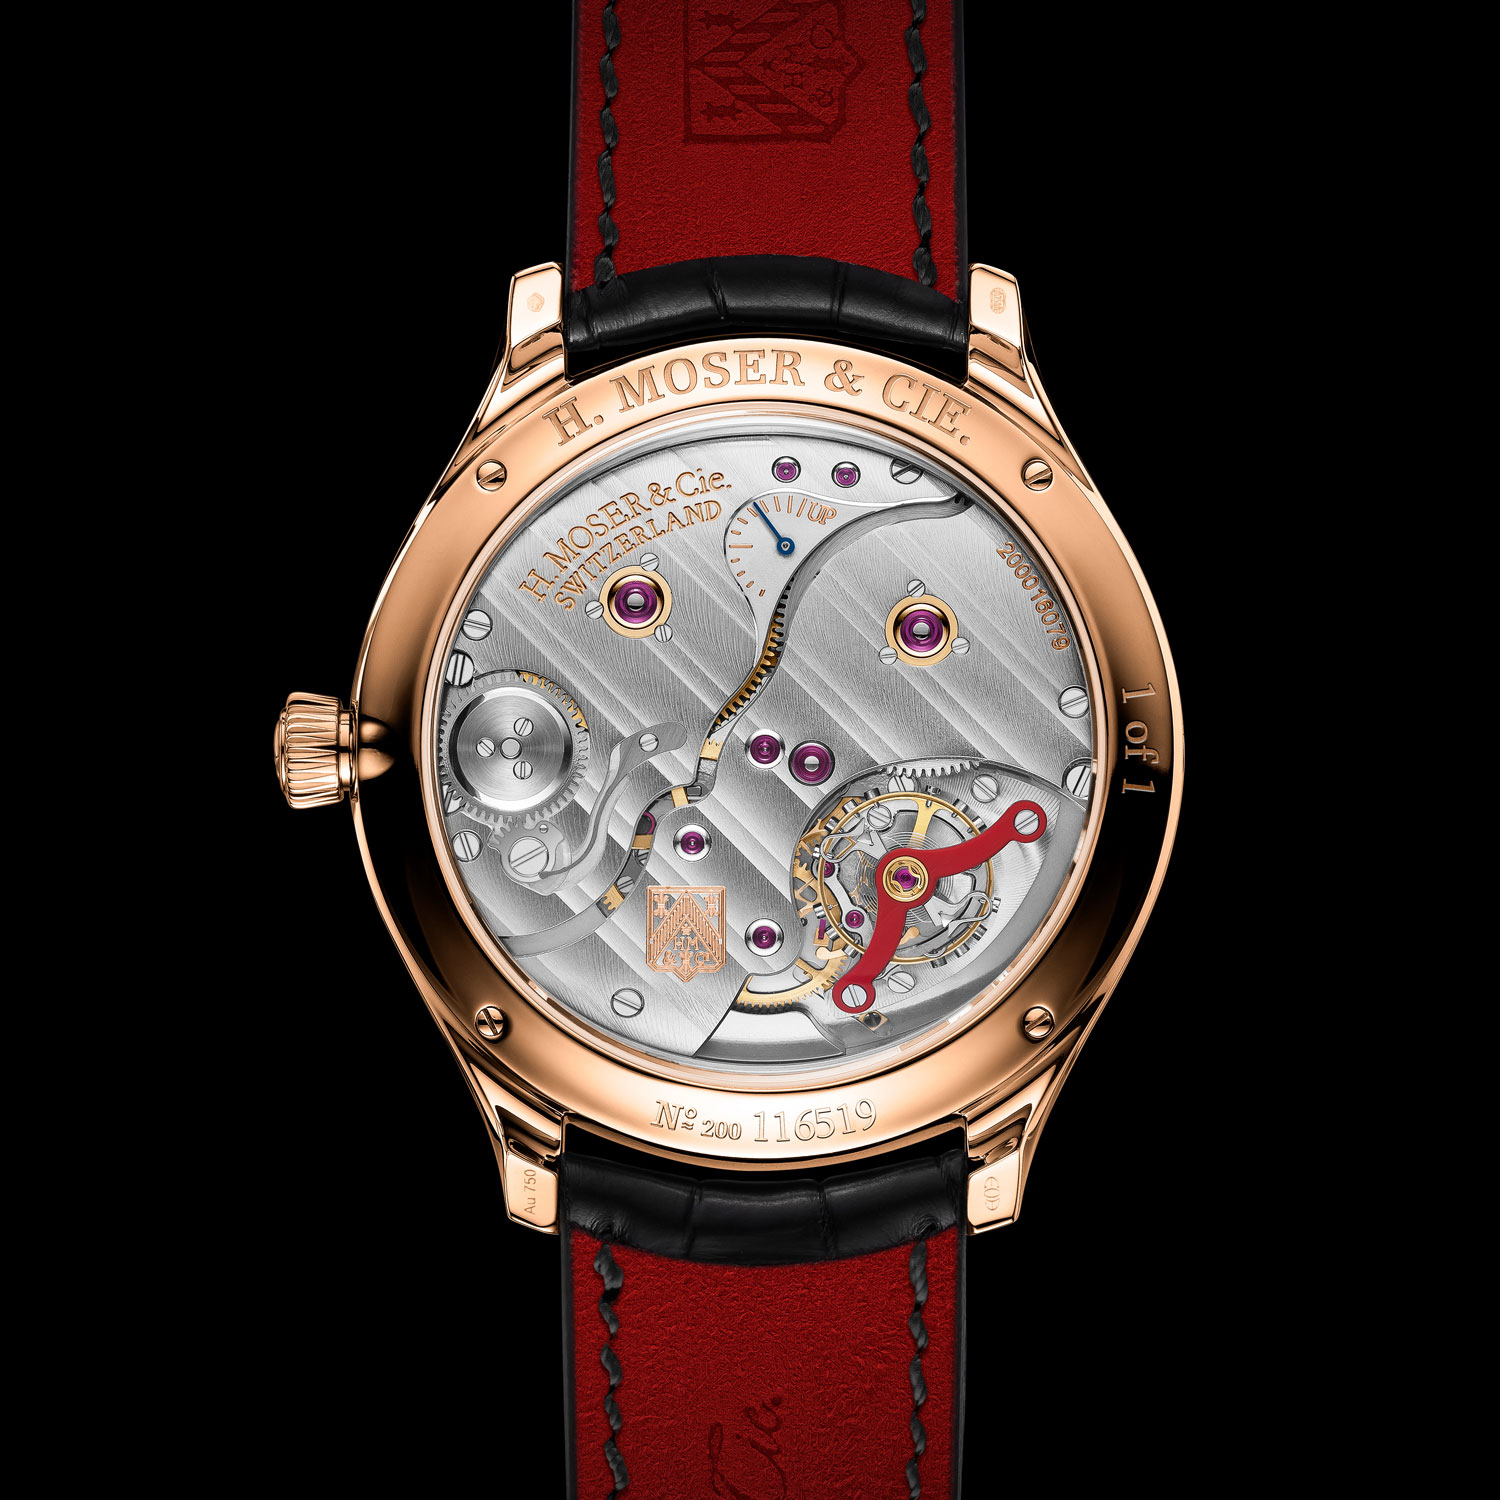 H. Möser & Cie Endeavour Perpetual Moon Concept Only Watch